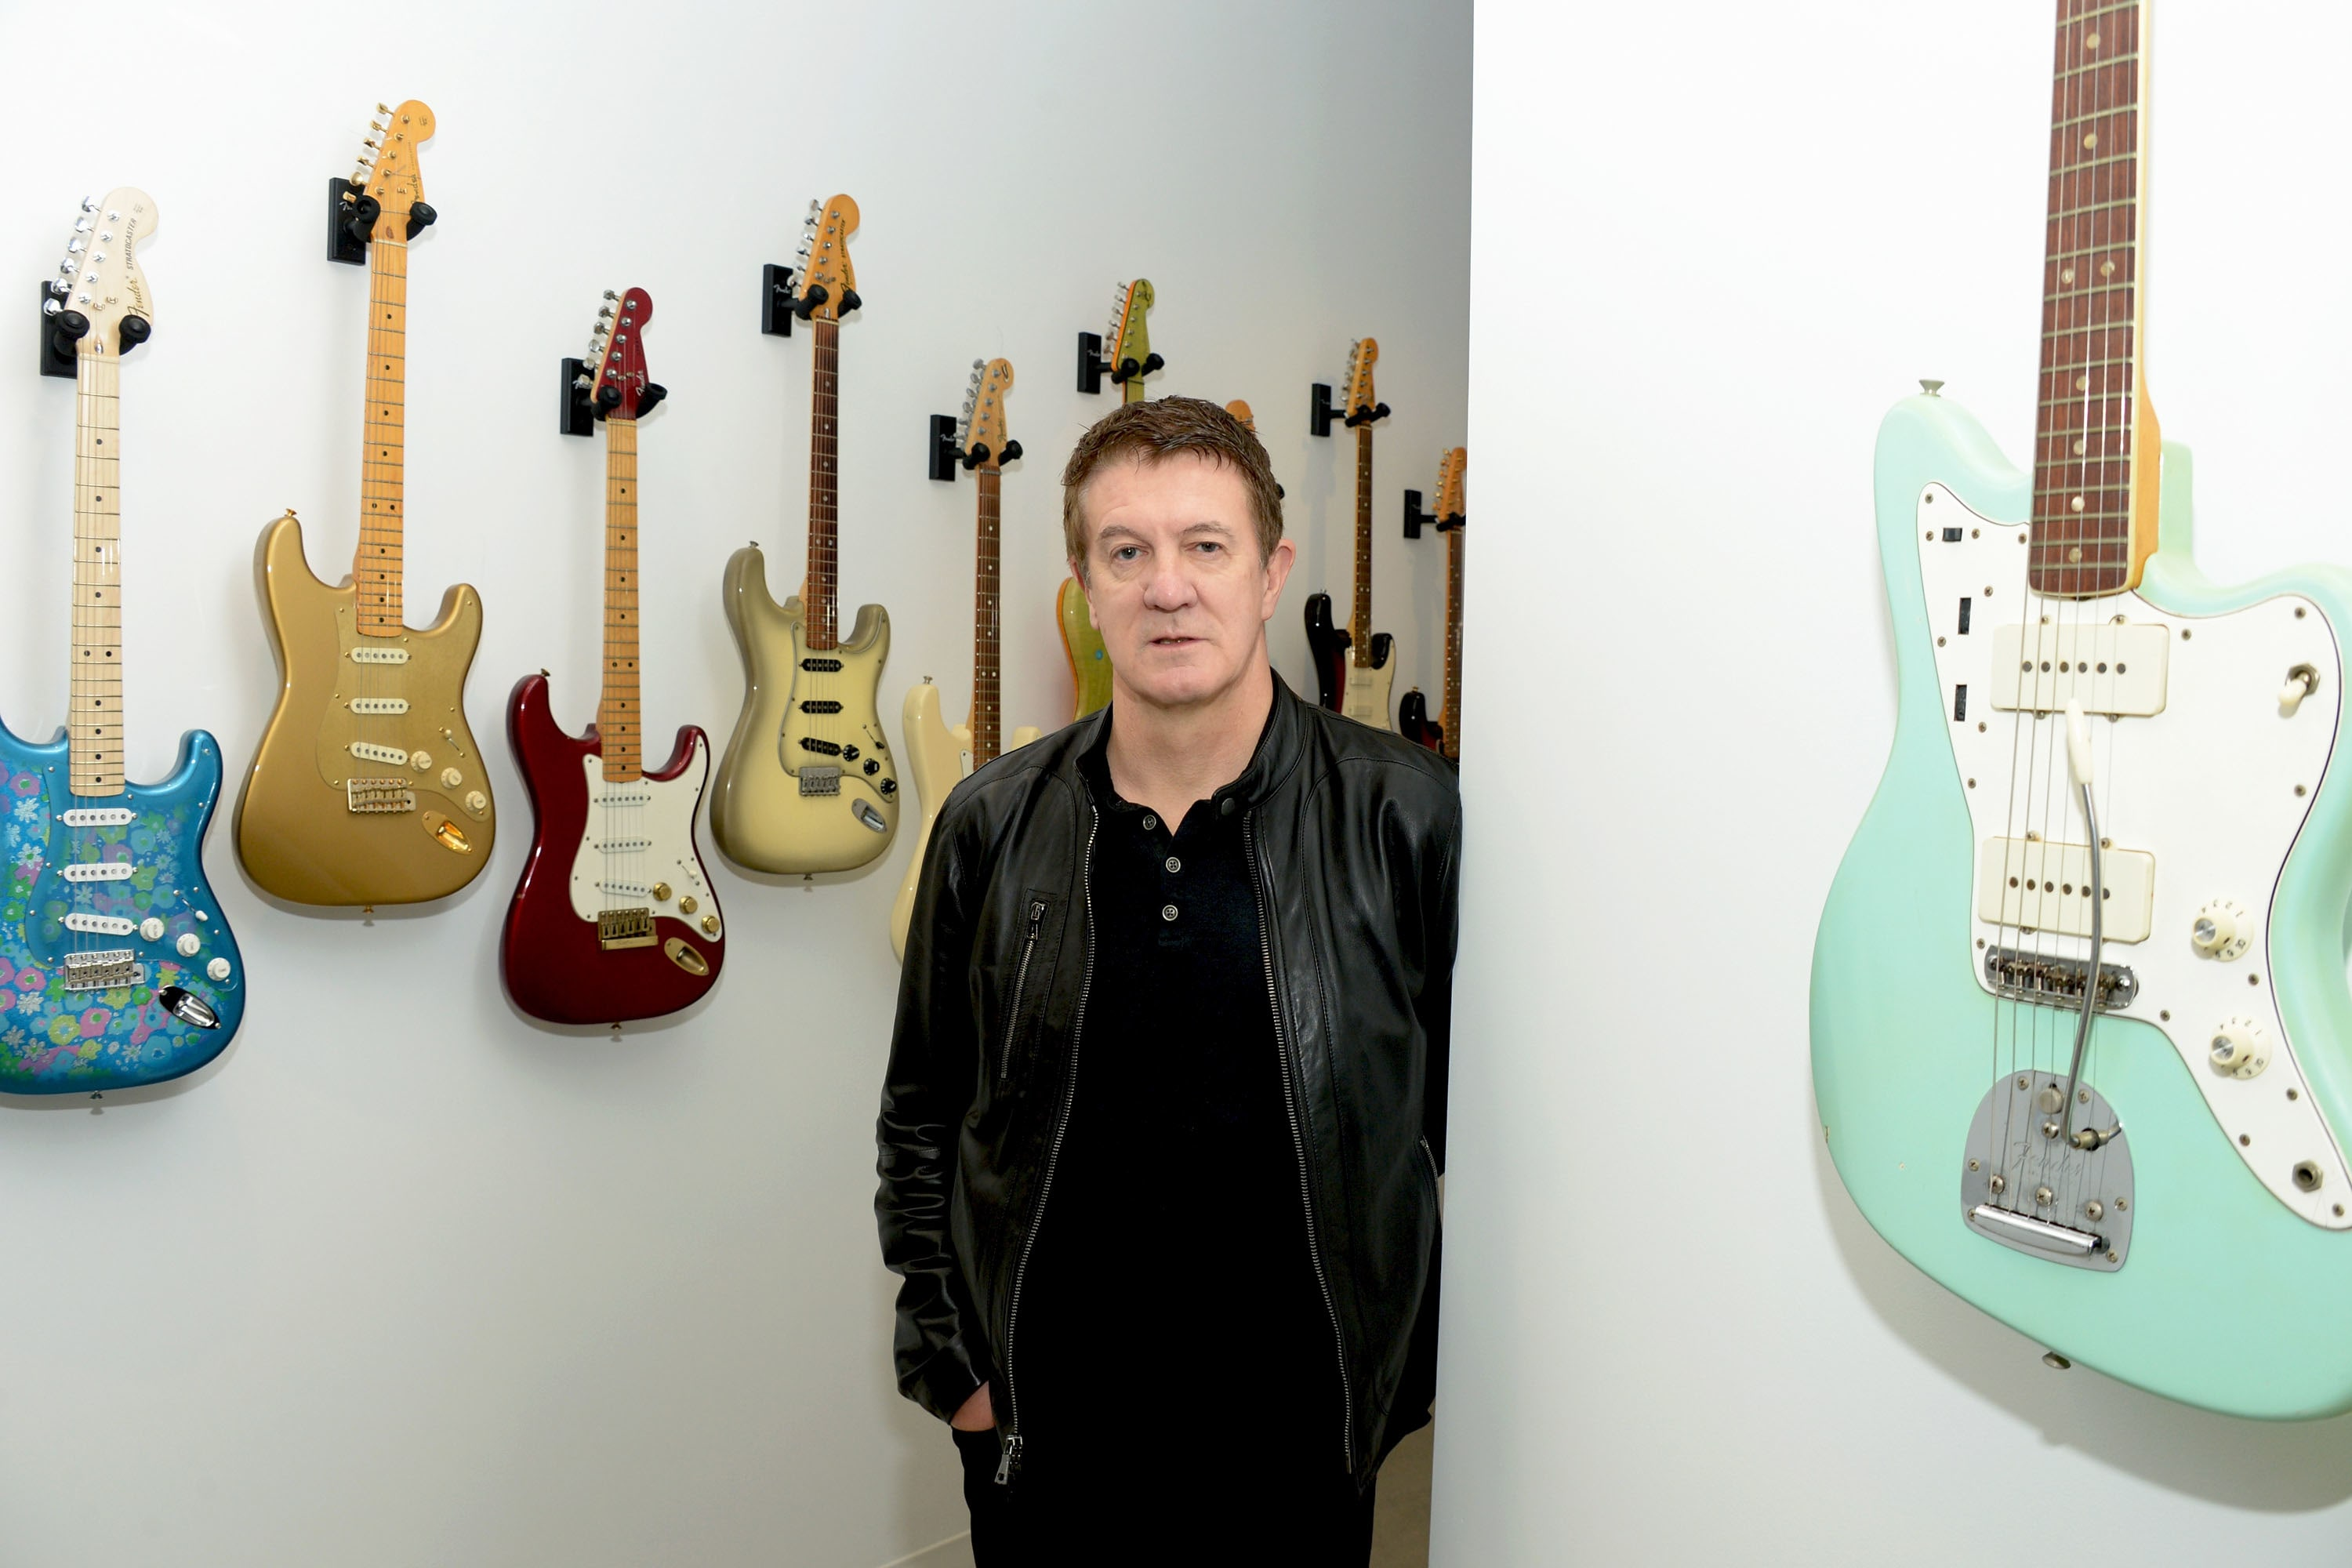 Fender's CEO learned this product lesson from Steve Jobs